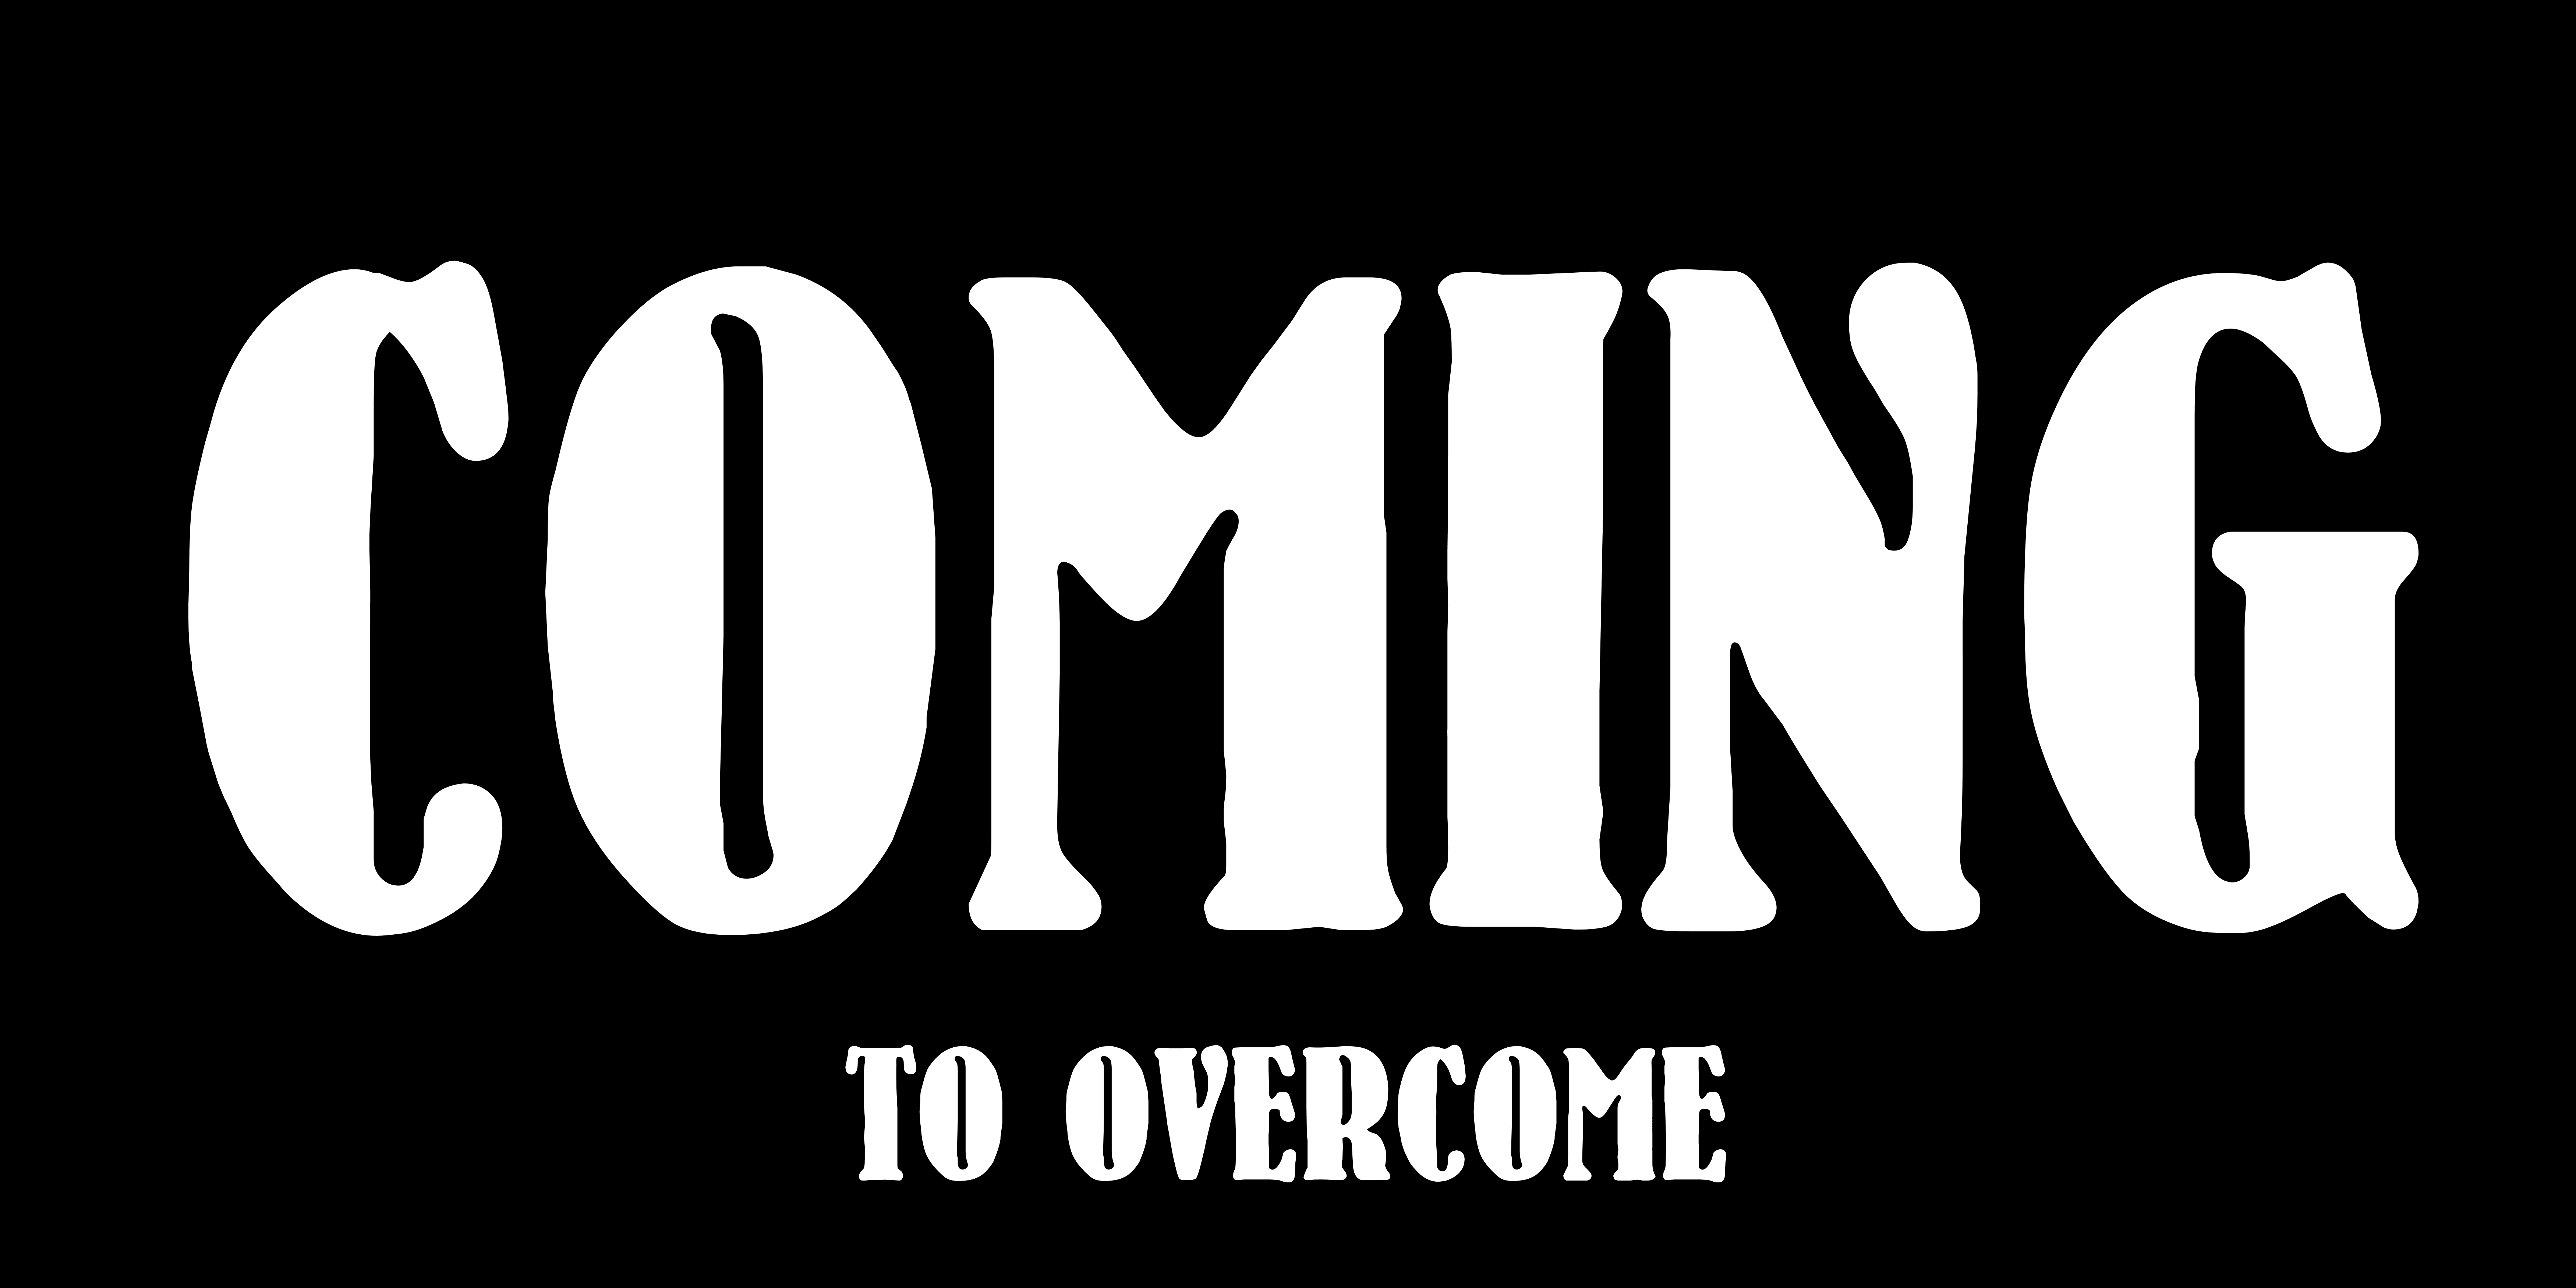 Coming to Overcome this Time!